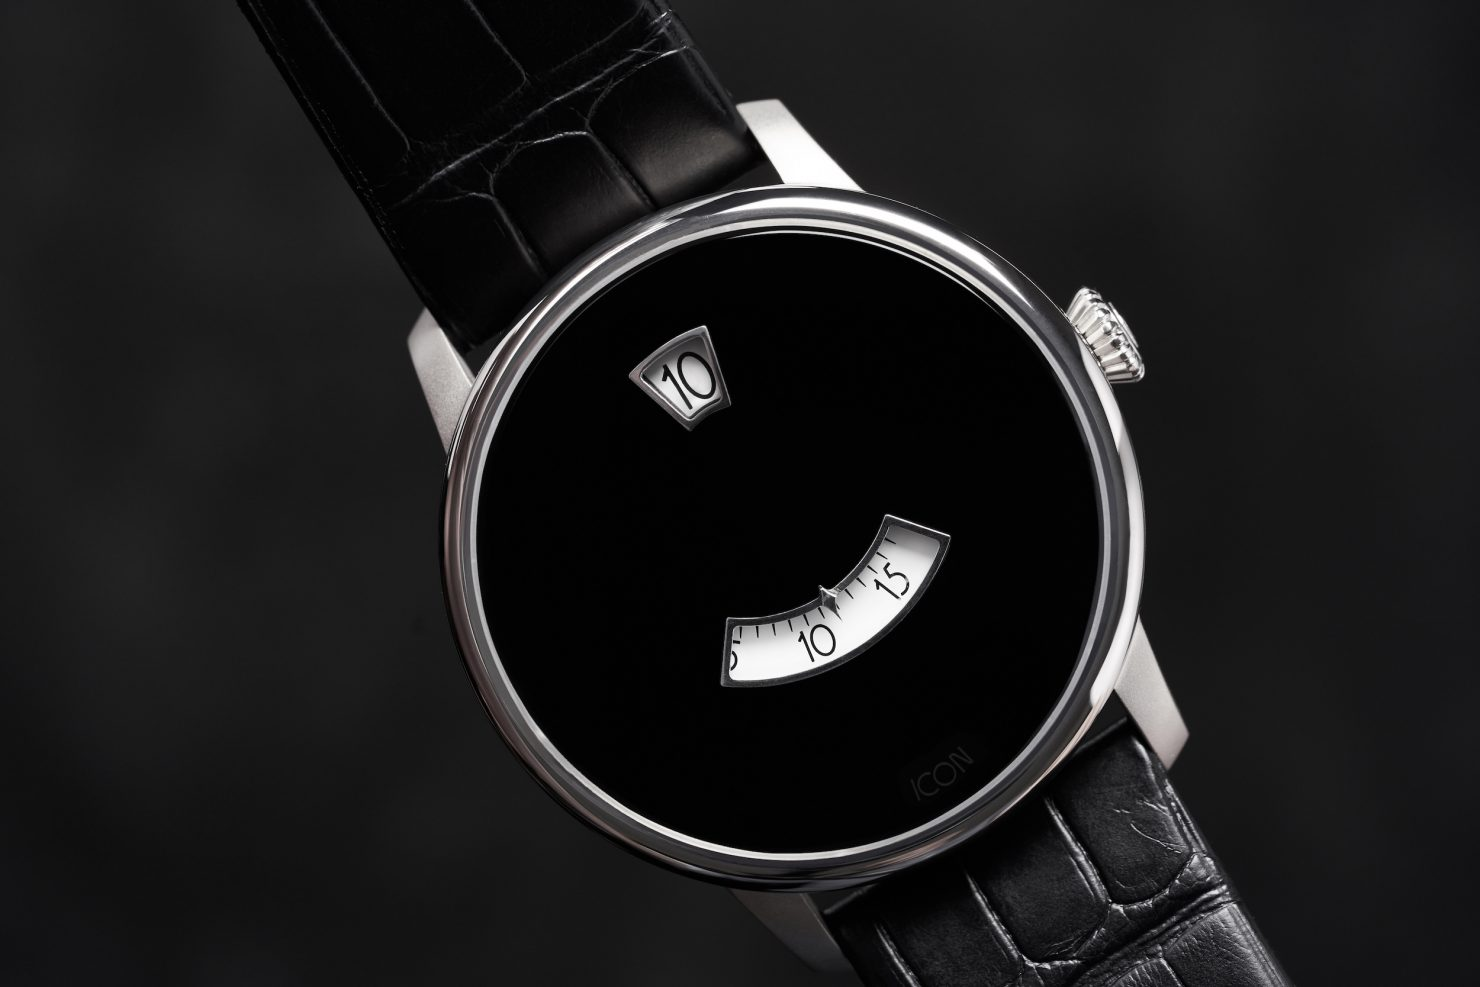 ICON Duesey Watch 1 1480x987 - ICON Duesey Watch